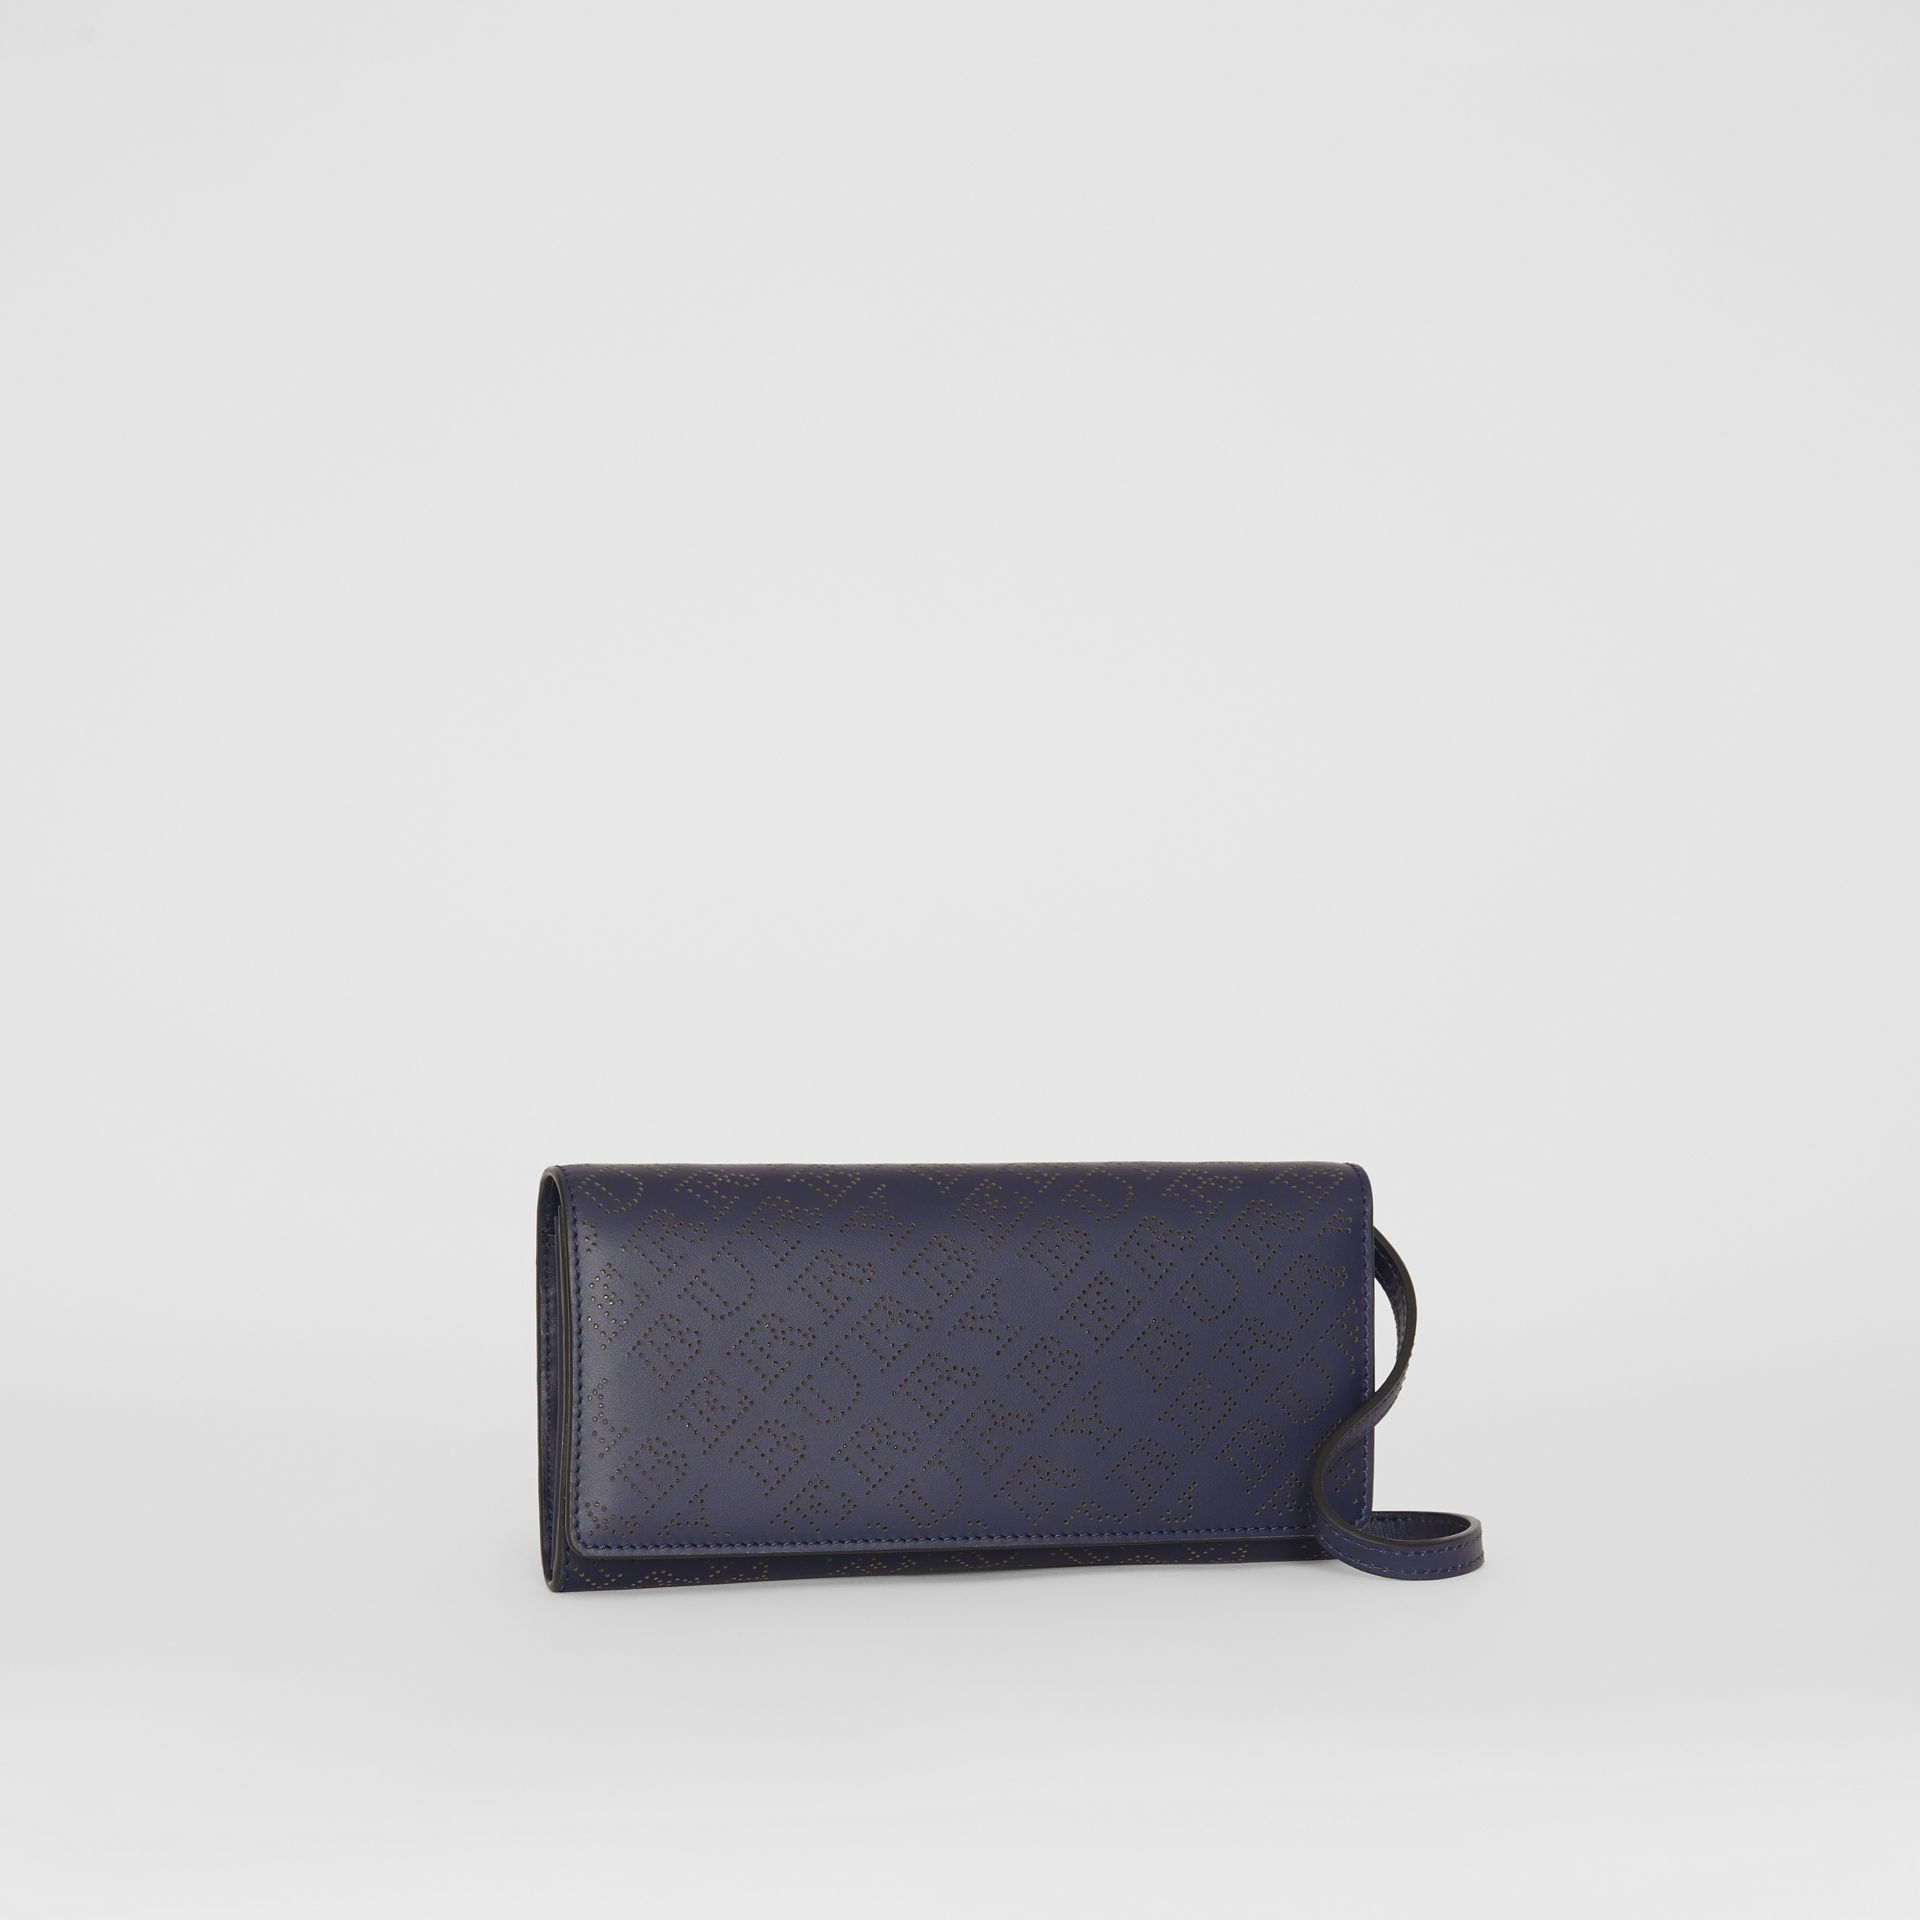 Perforated Logo Leather Wallet with Detachable Strap in Navy - Women | Burberry United Kingdom - gallery image 6